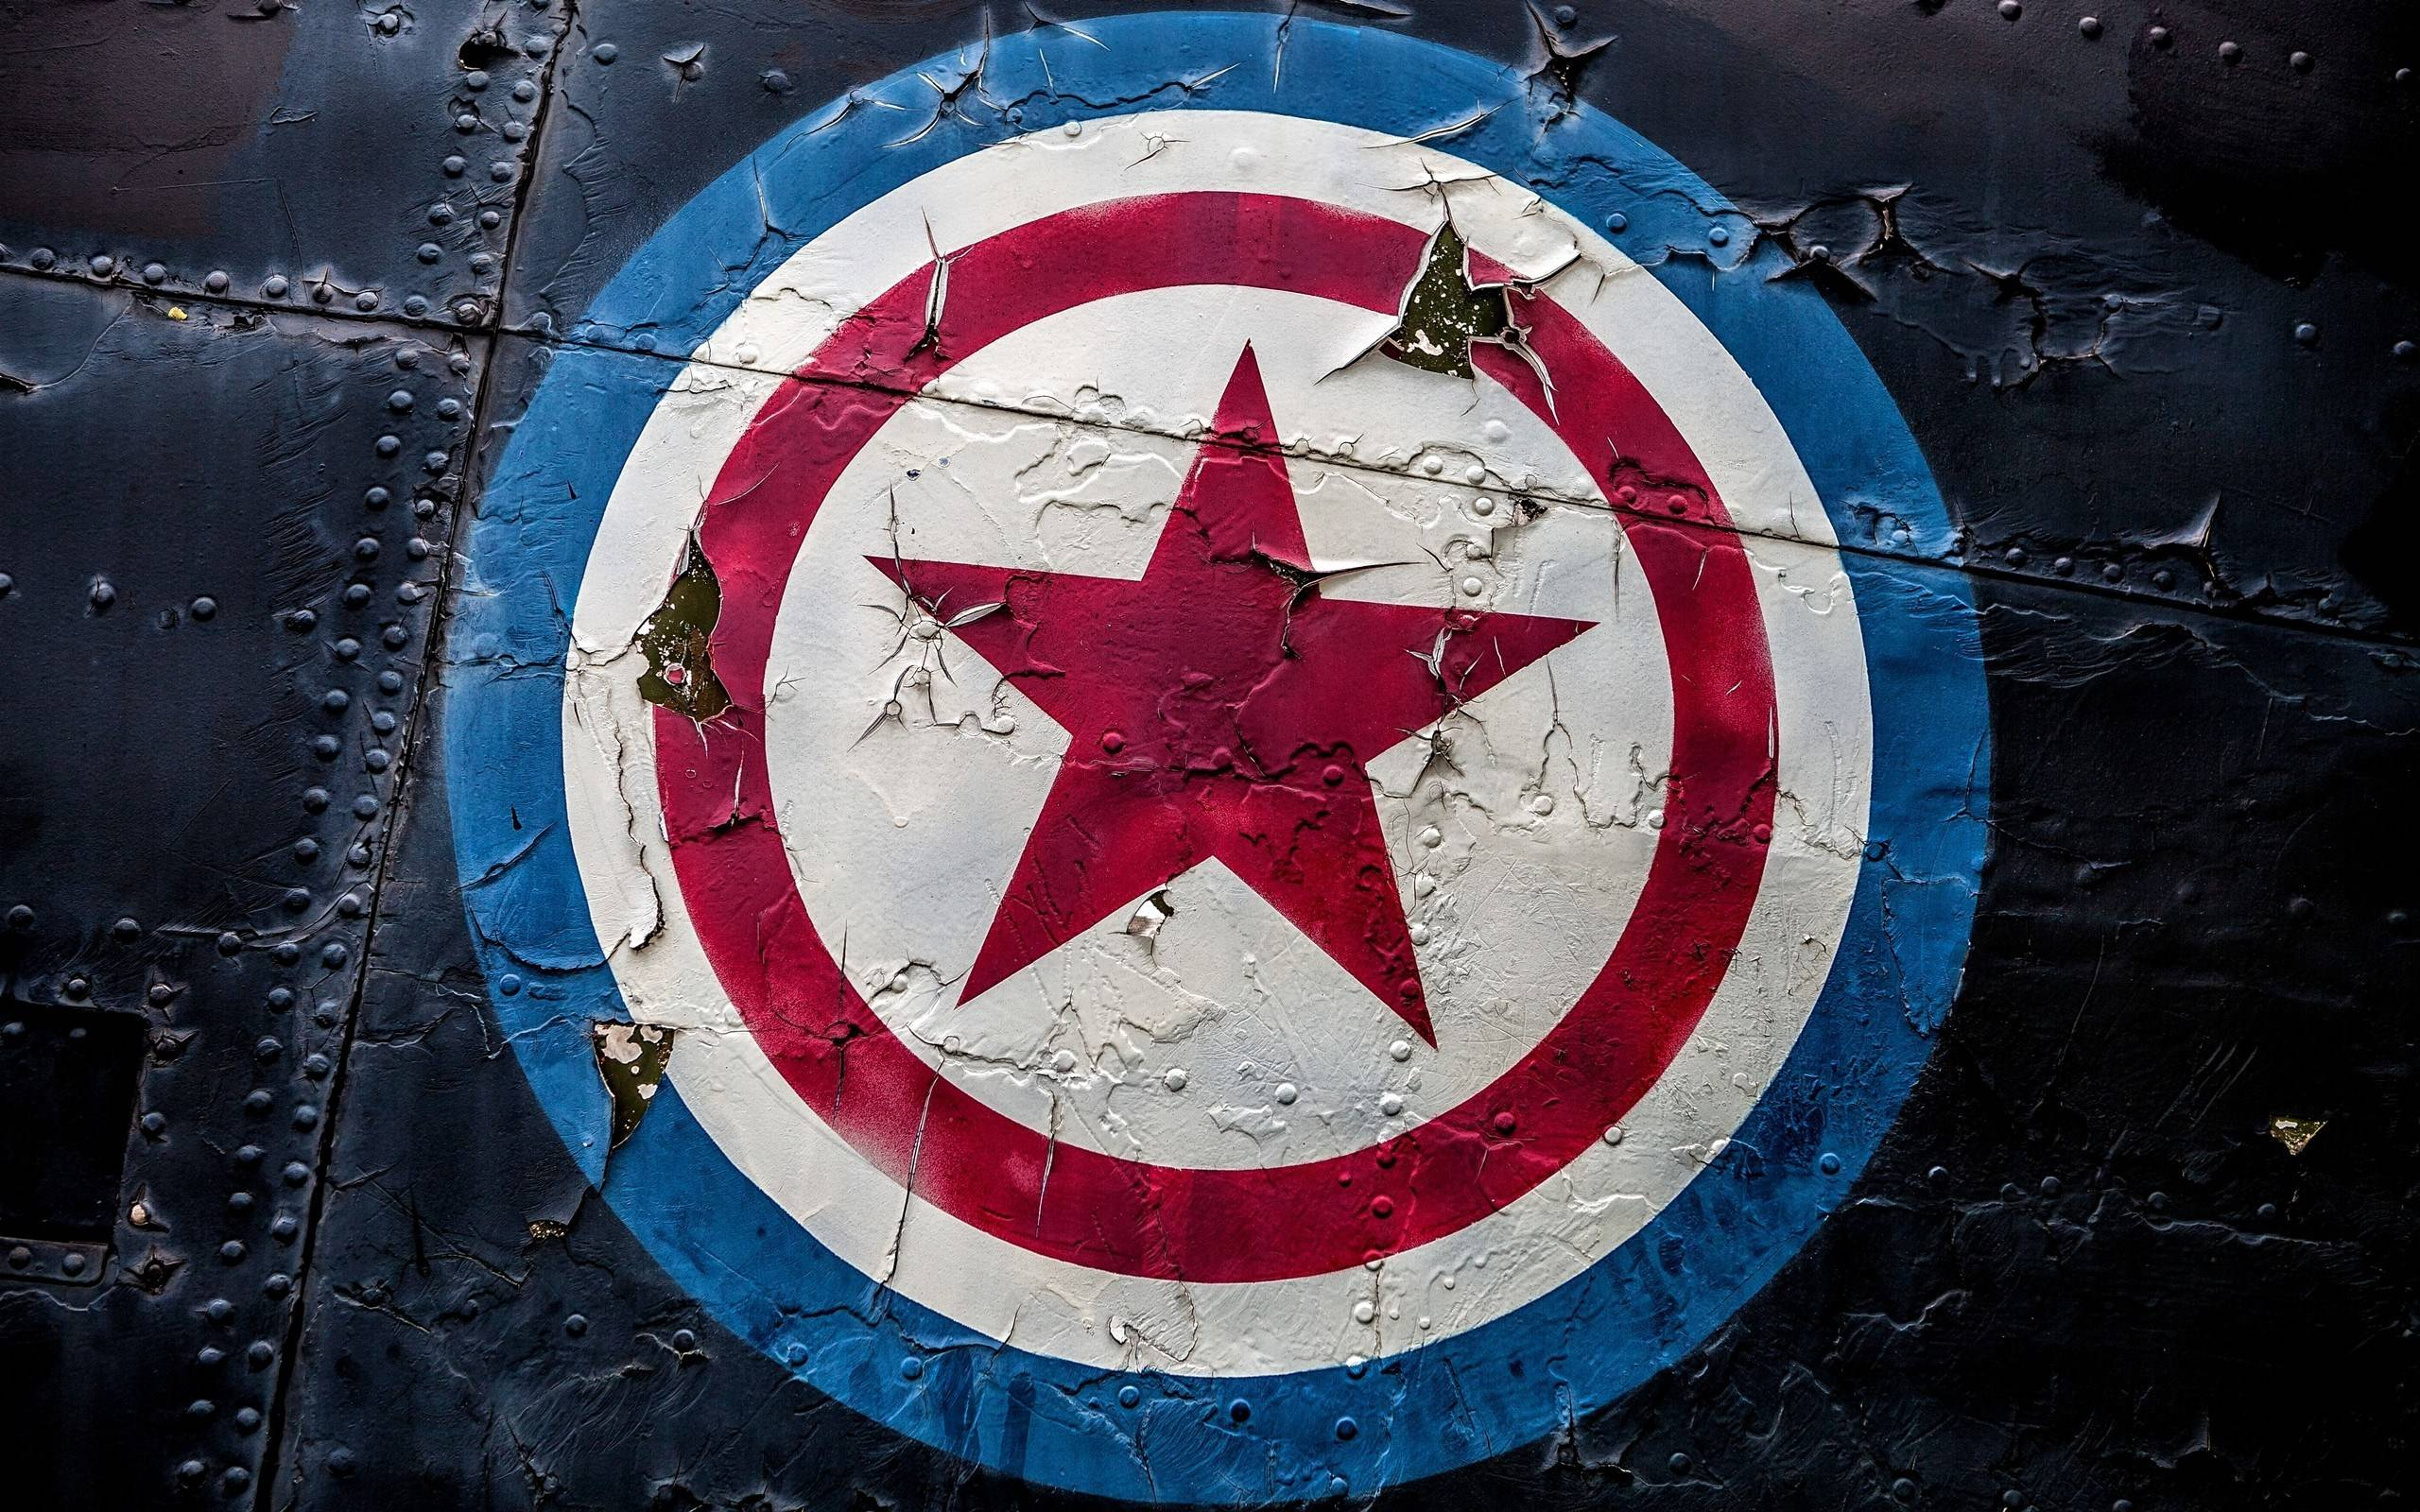 Captain America Nokia 230 215 Samsung Xcover 550 LG G350 Android